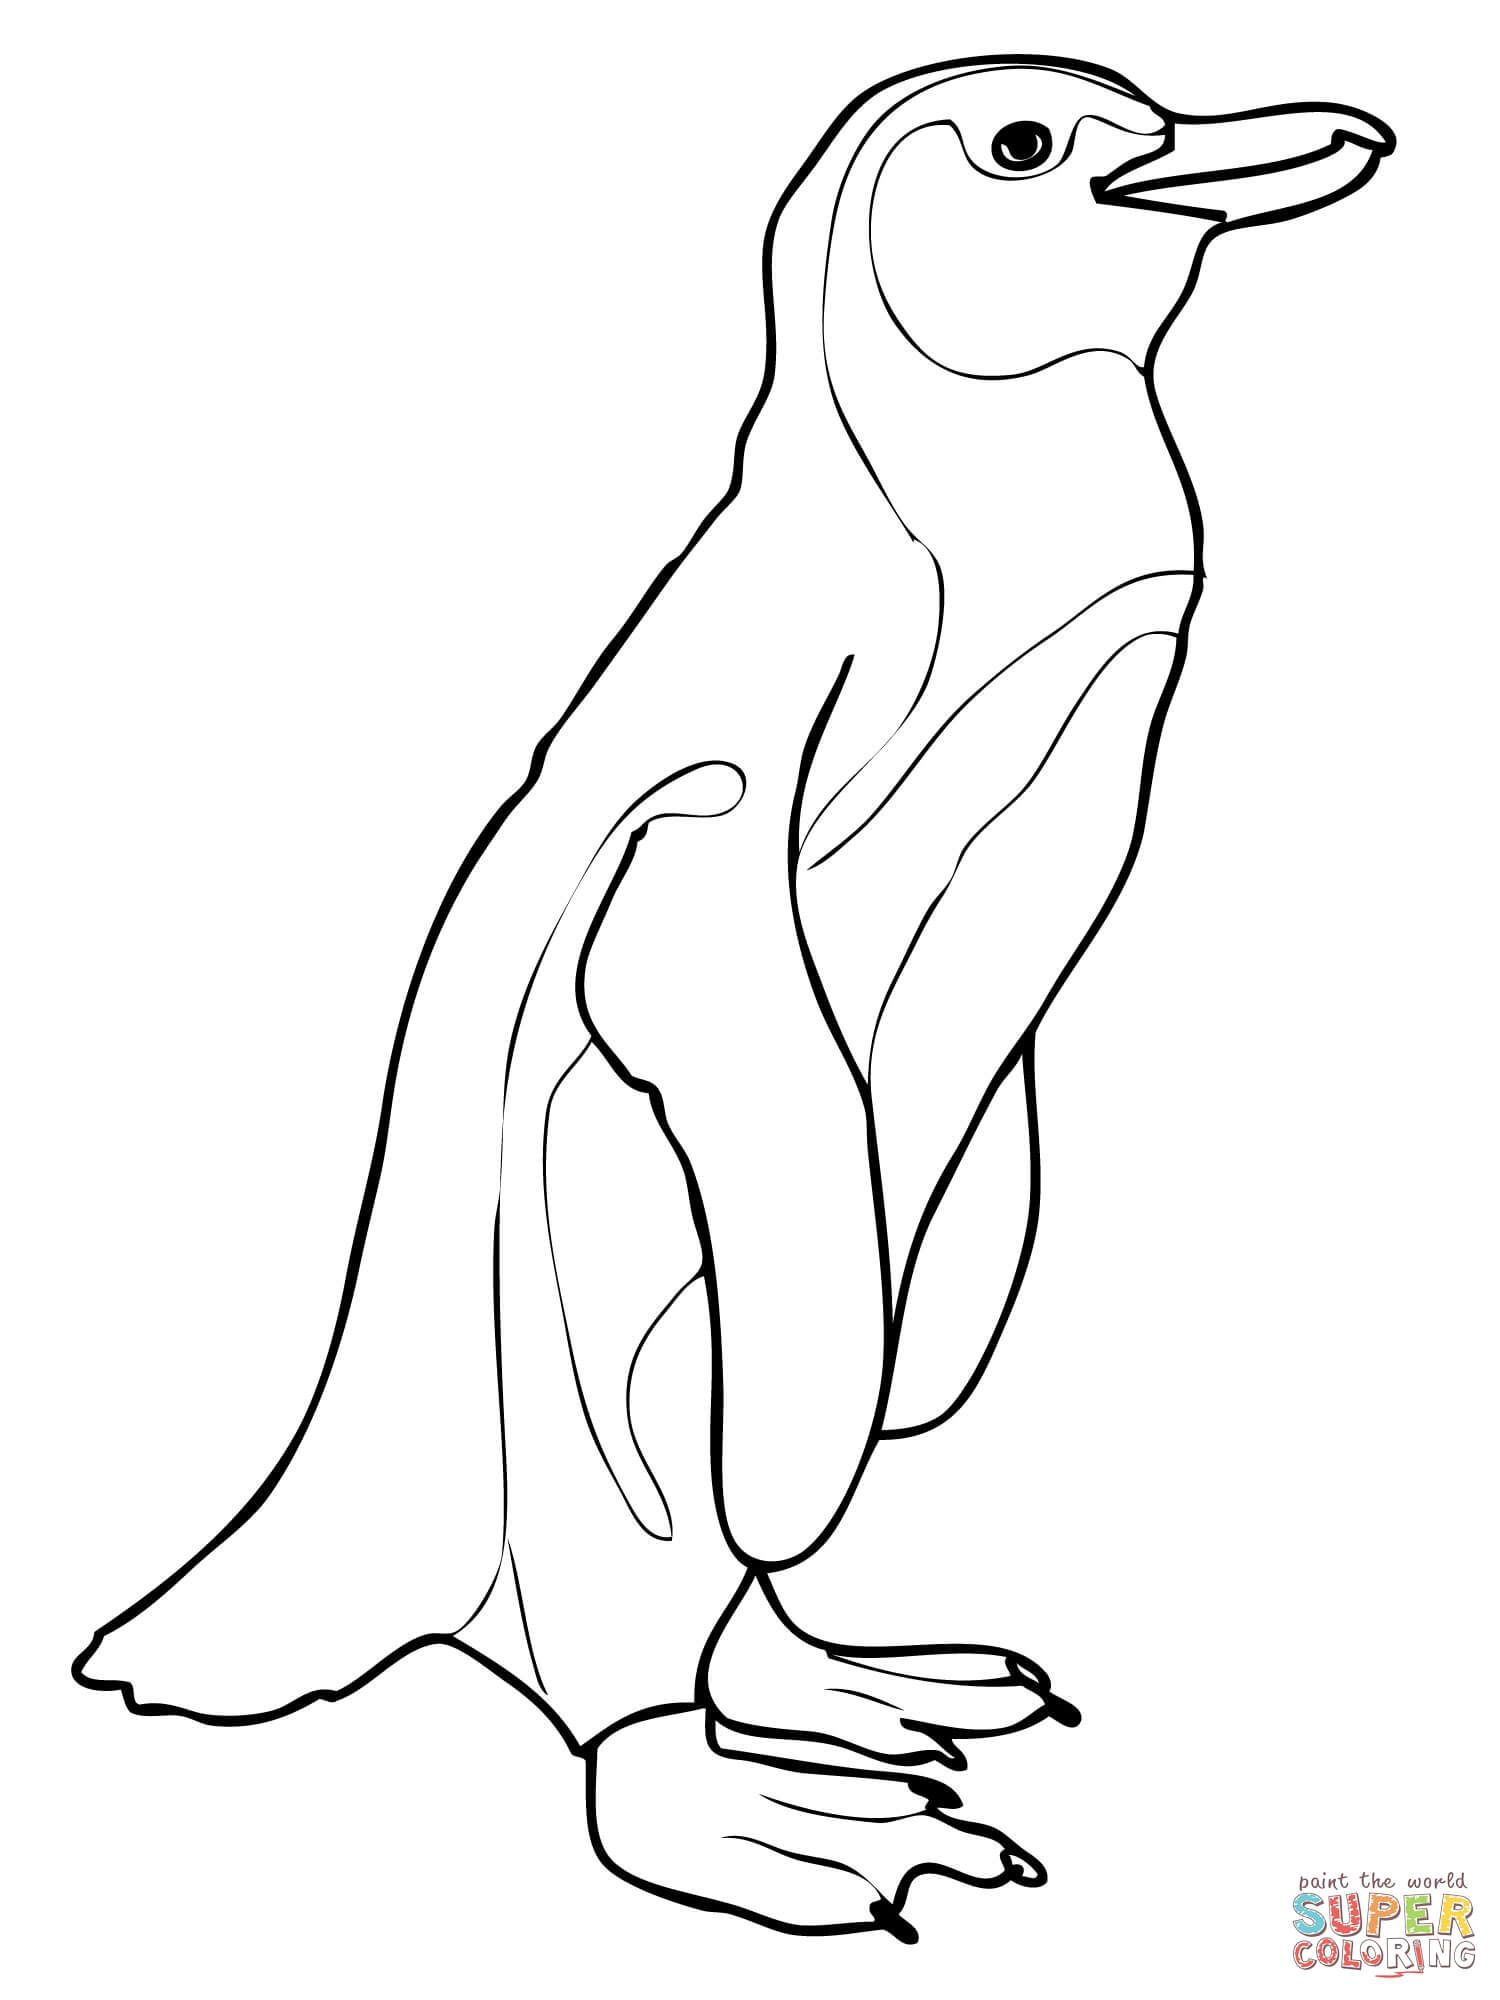 African Penguin (aka Jackass Penguin) coloring page